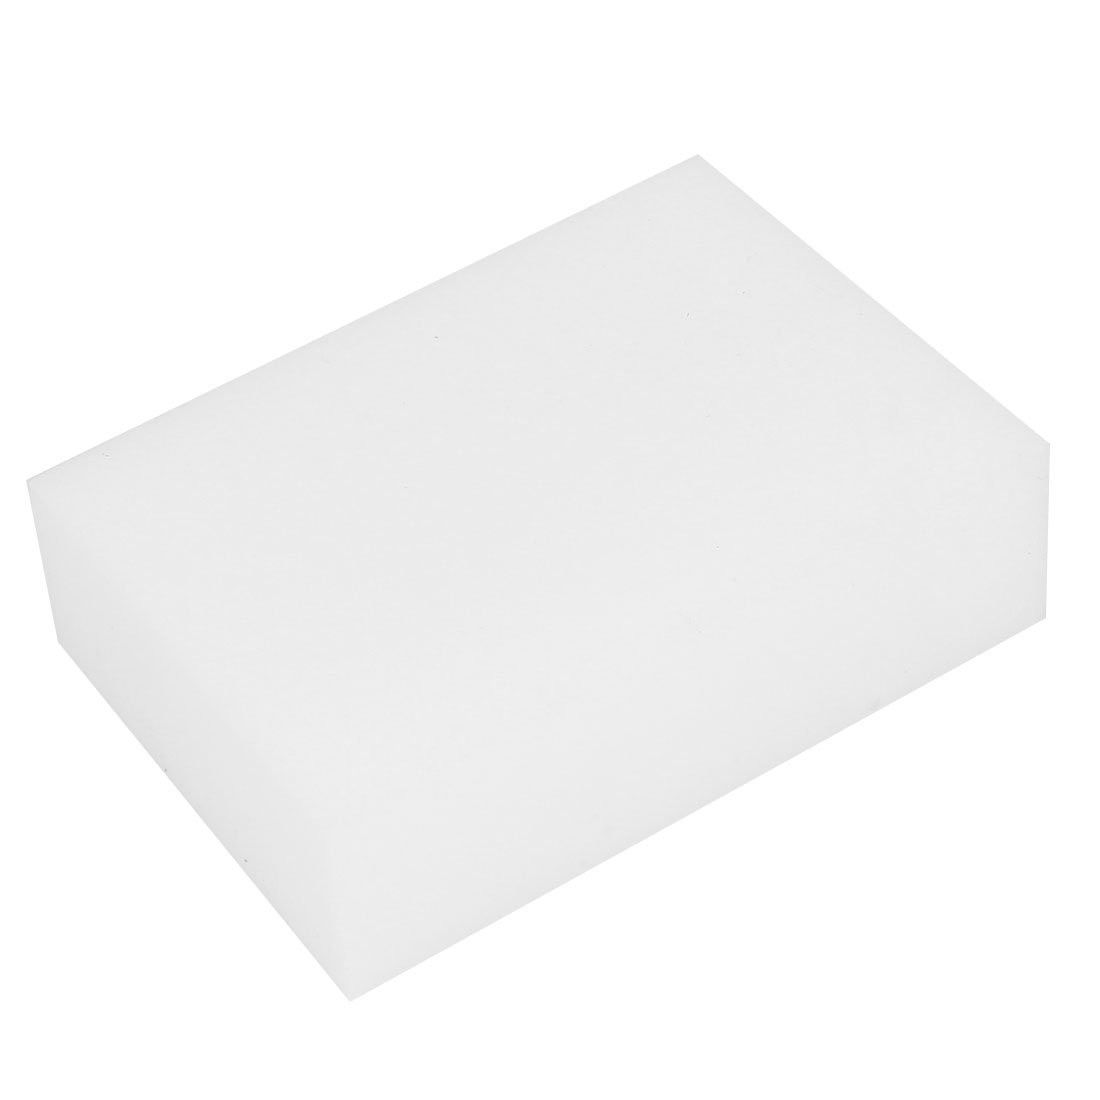 uxcell a14102200ux0001 Car Cleaning Sponge Unknown